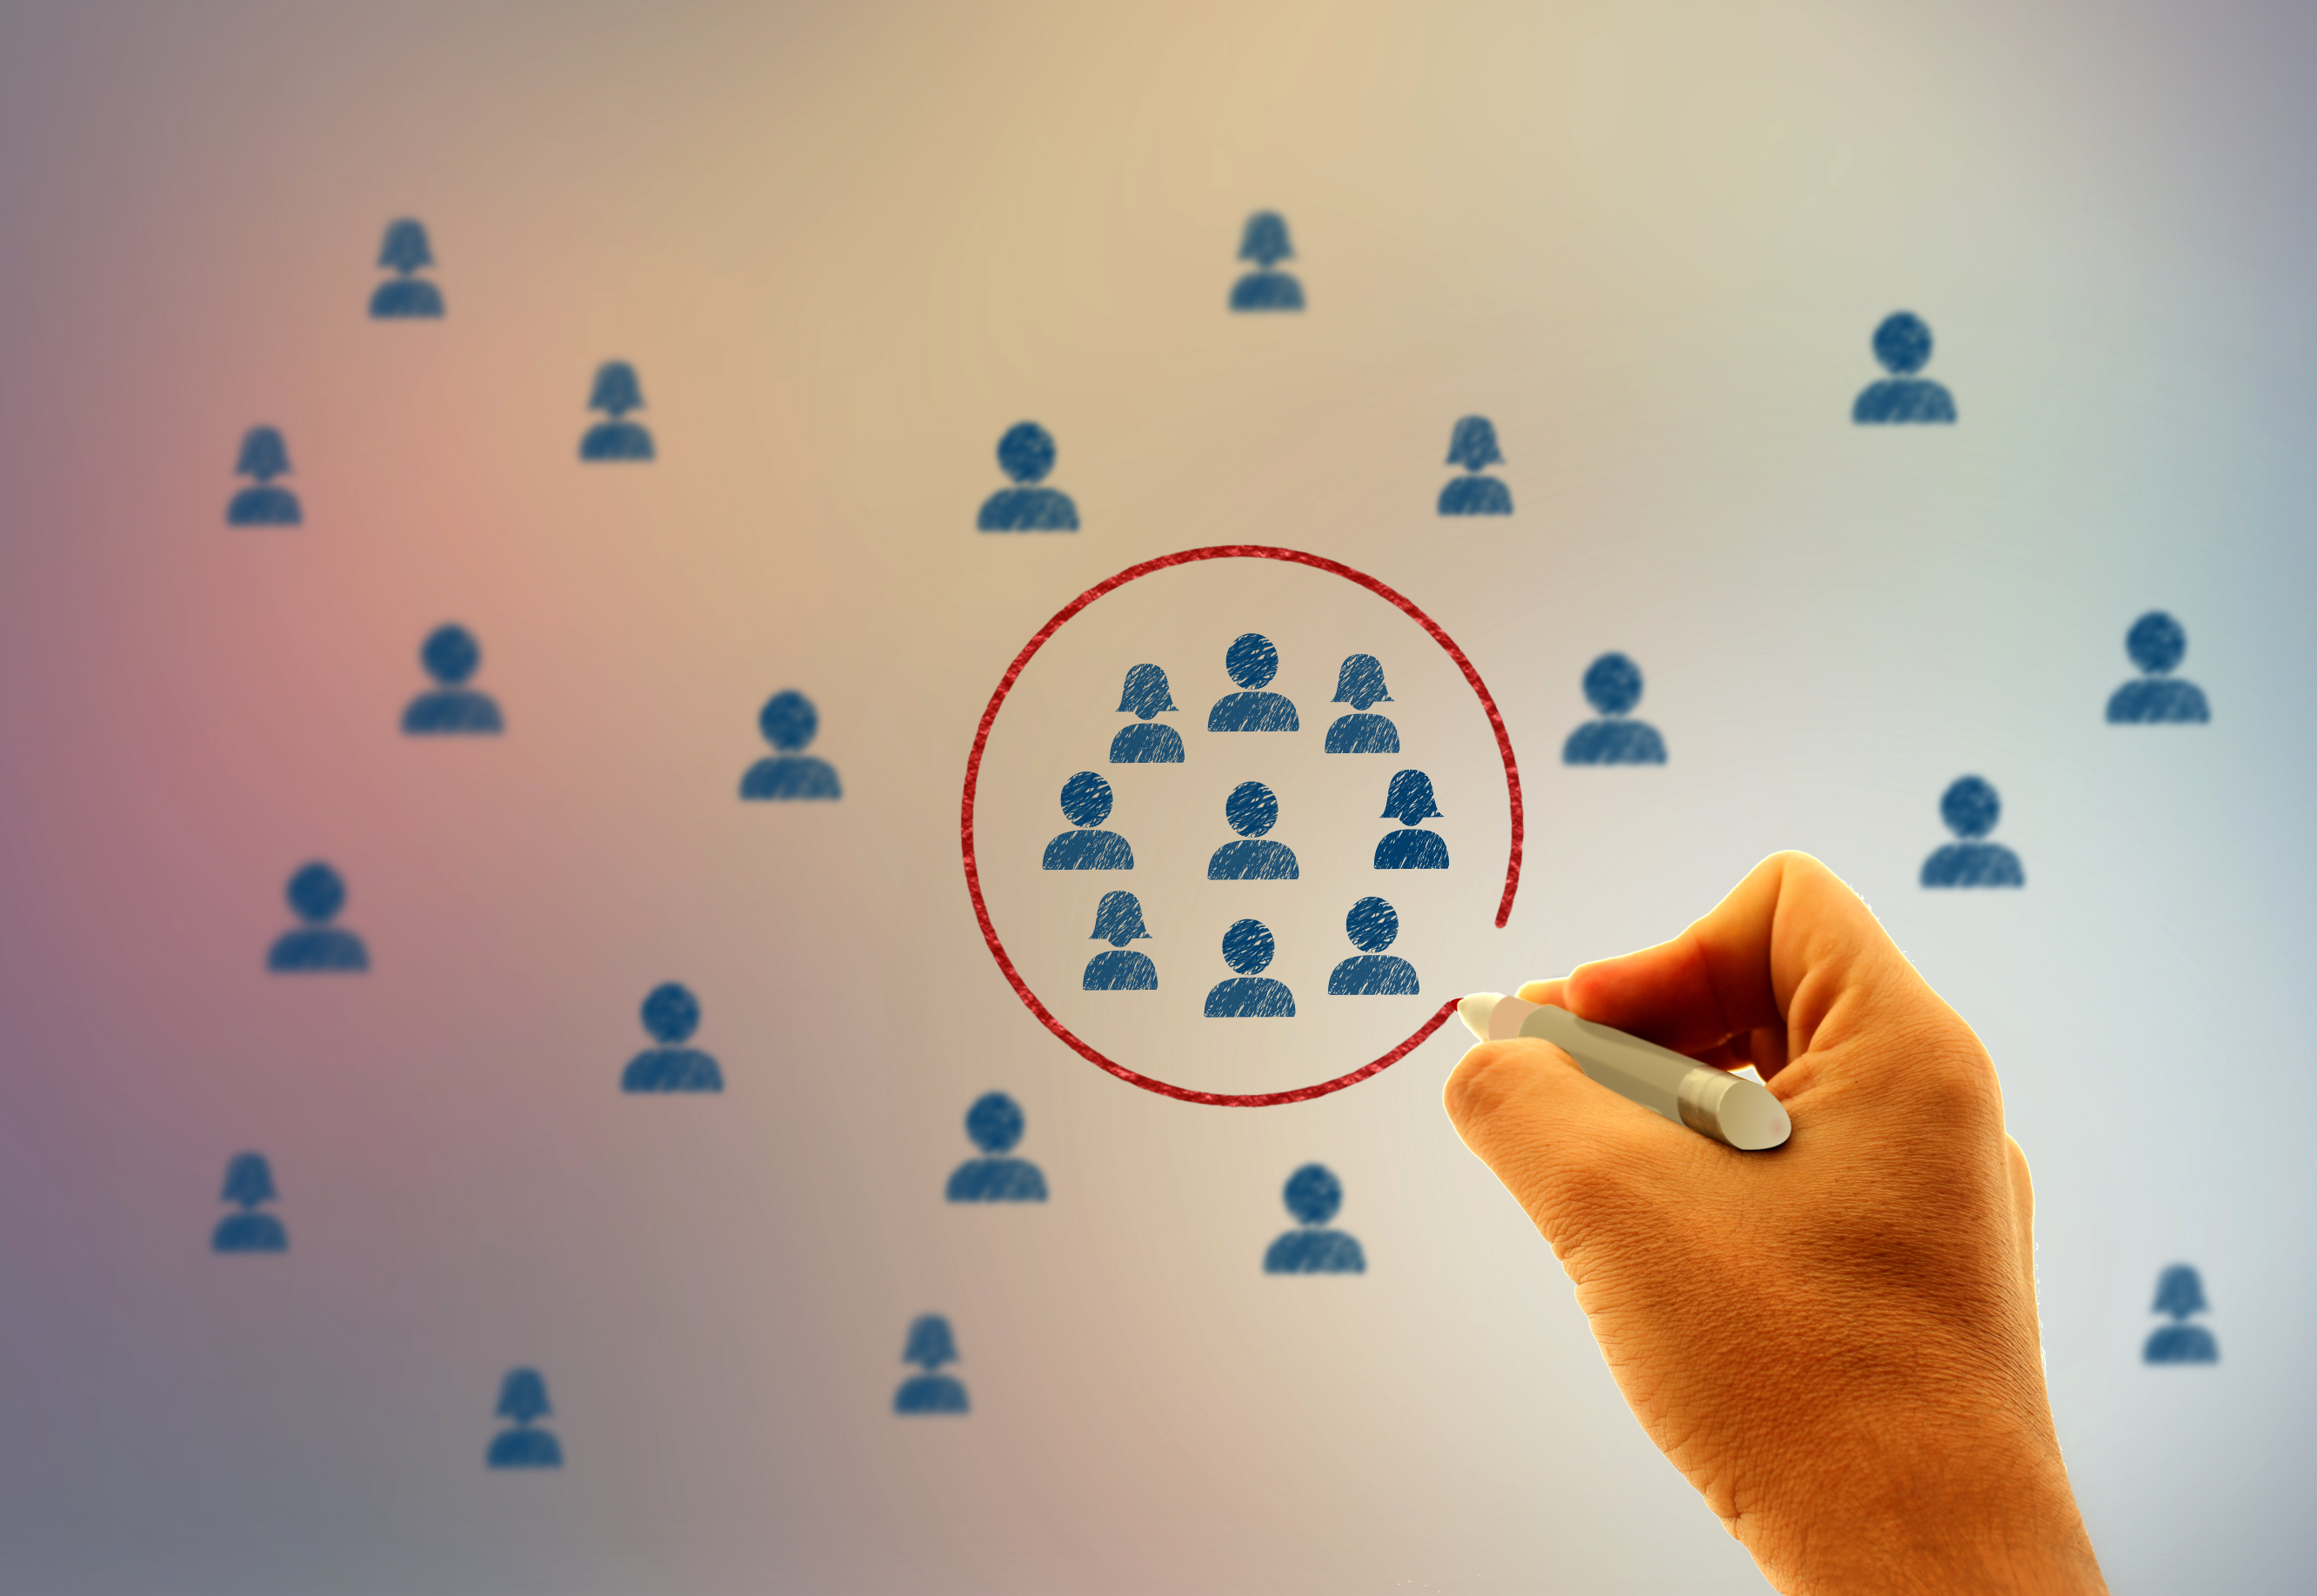 Why Segmentation is Important for Marketing Campaigns